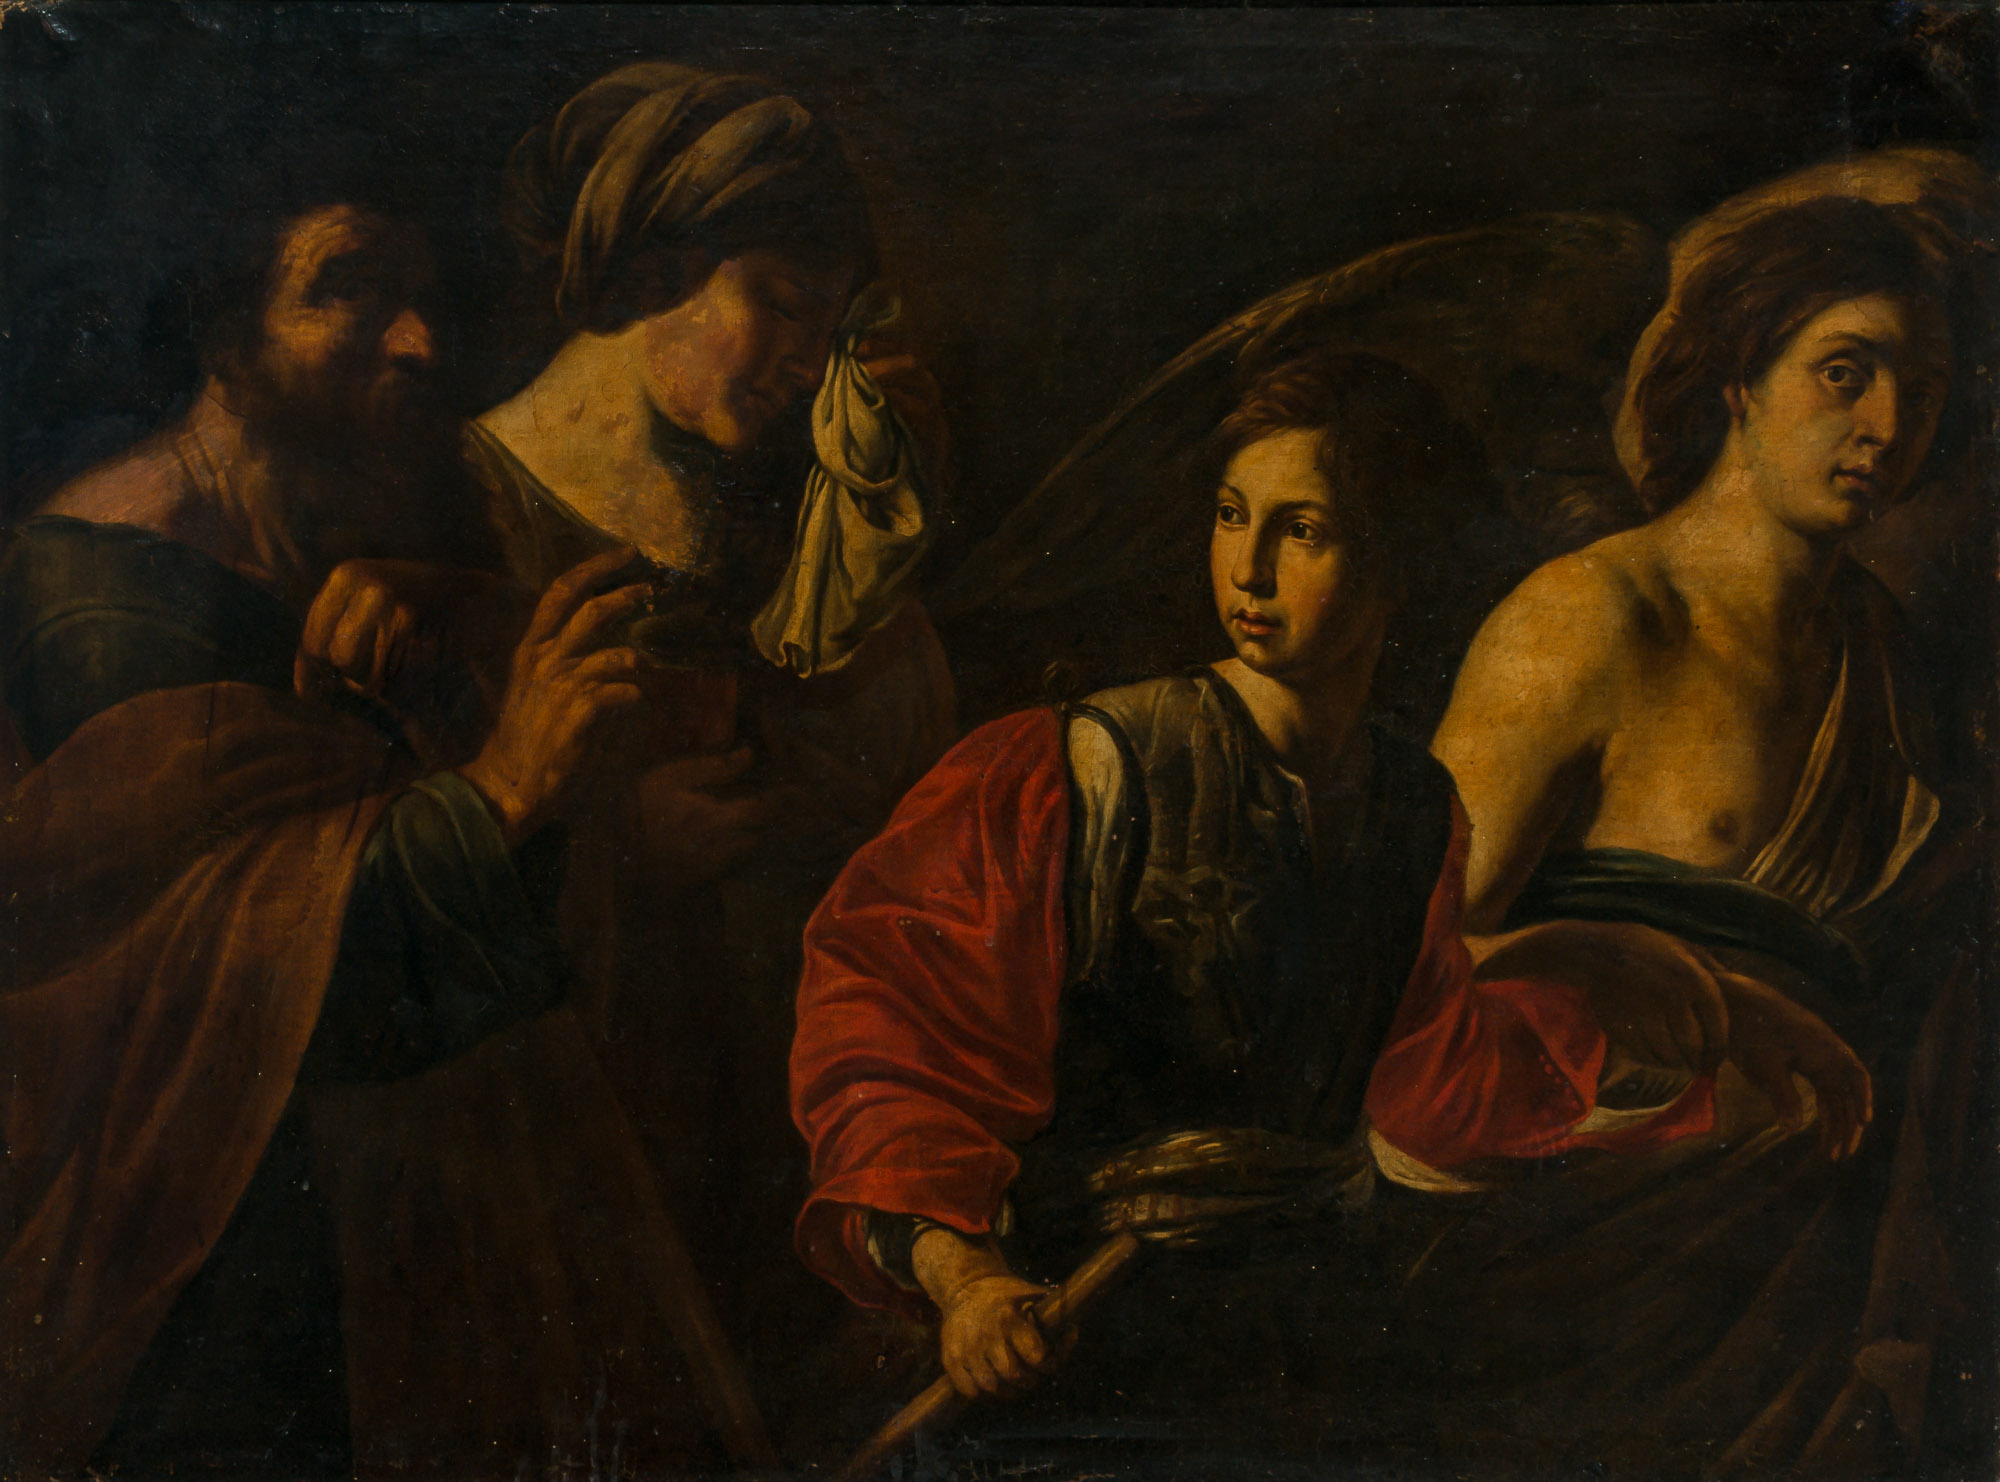 Old Master Paintings & Drawings | Doyle Auction House